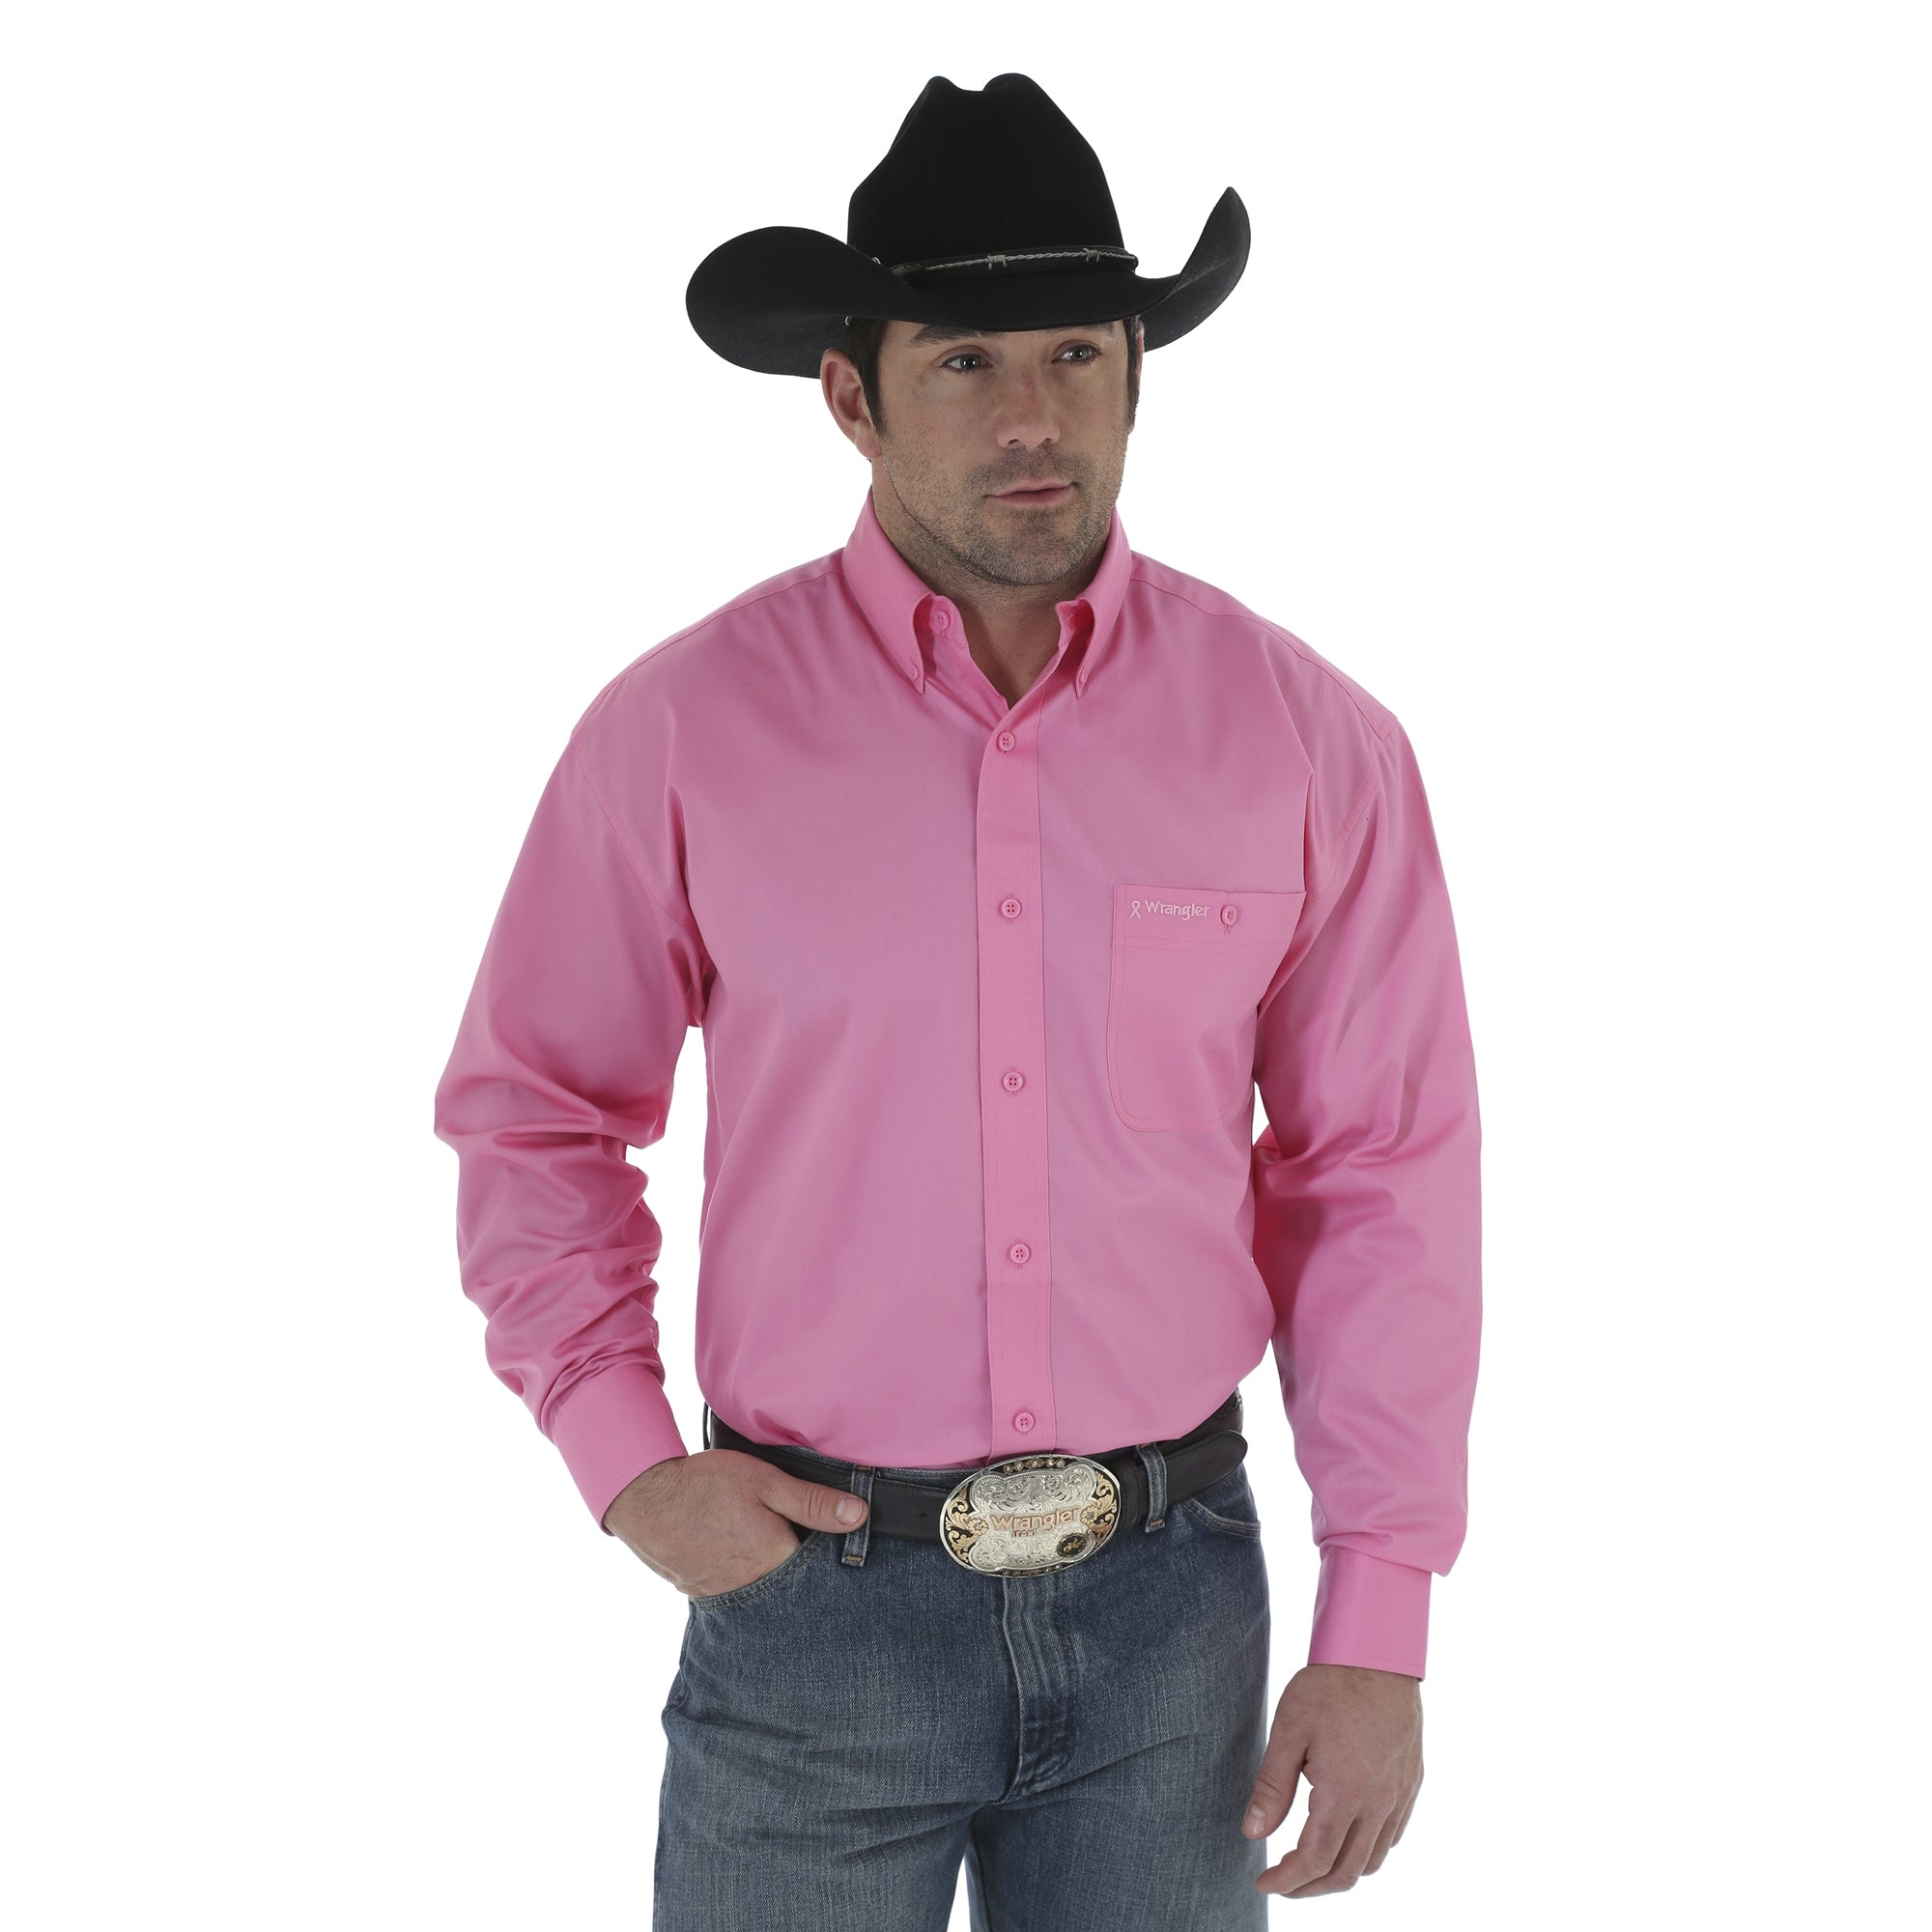 Men's Wrangler Tough Enough To Wear Pink Button Down Shirt #MTP242K